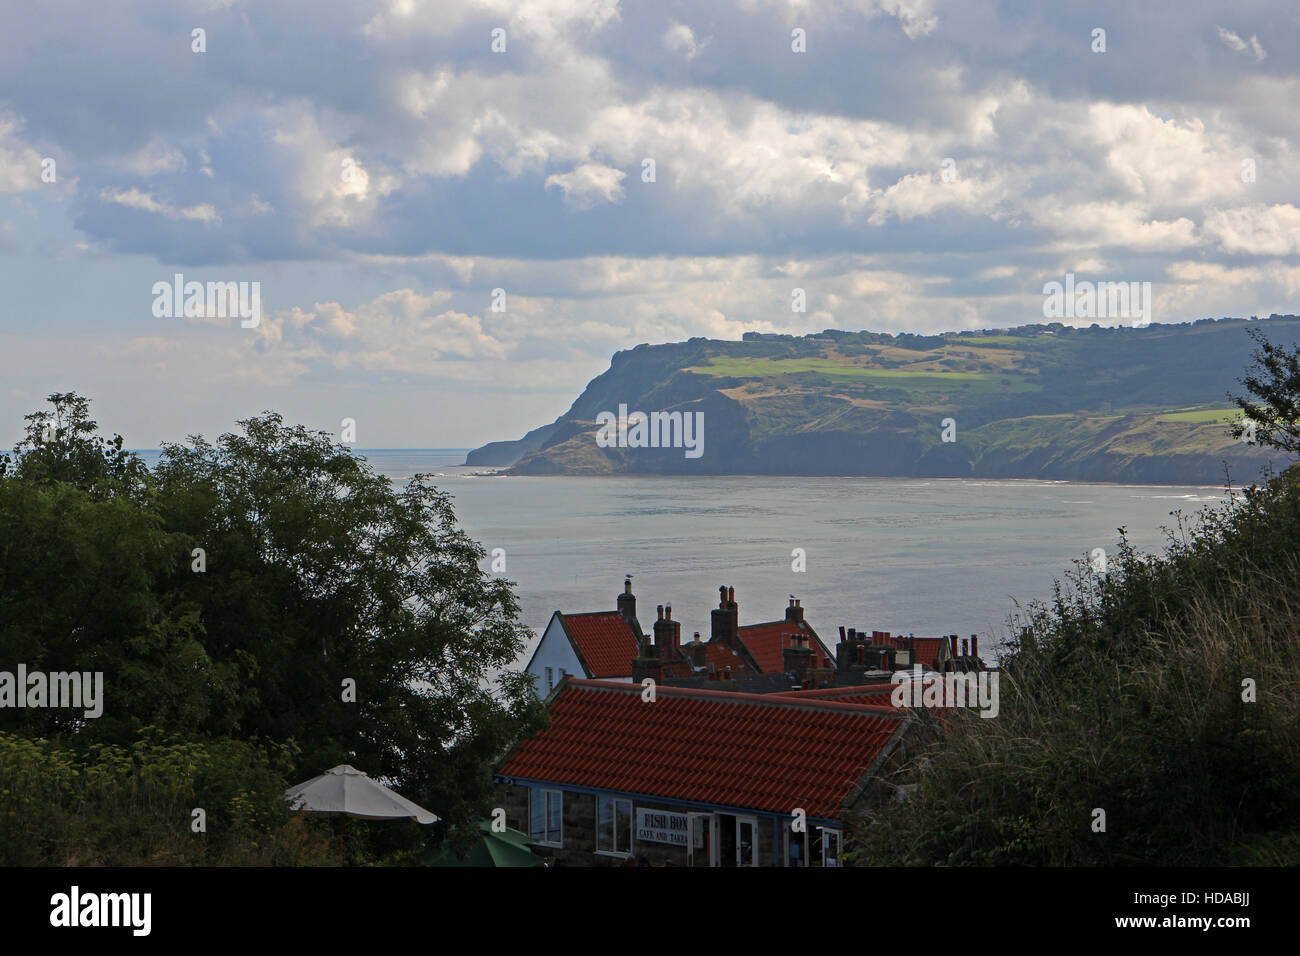 Robin Hoods Bay and coastline cliffs - Stock Image